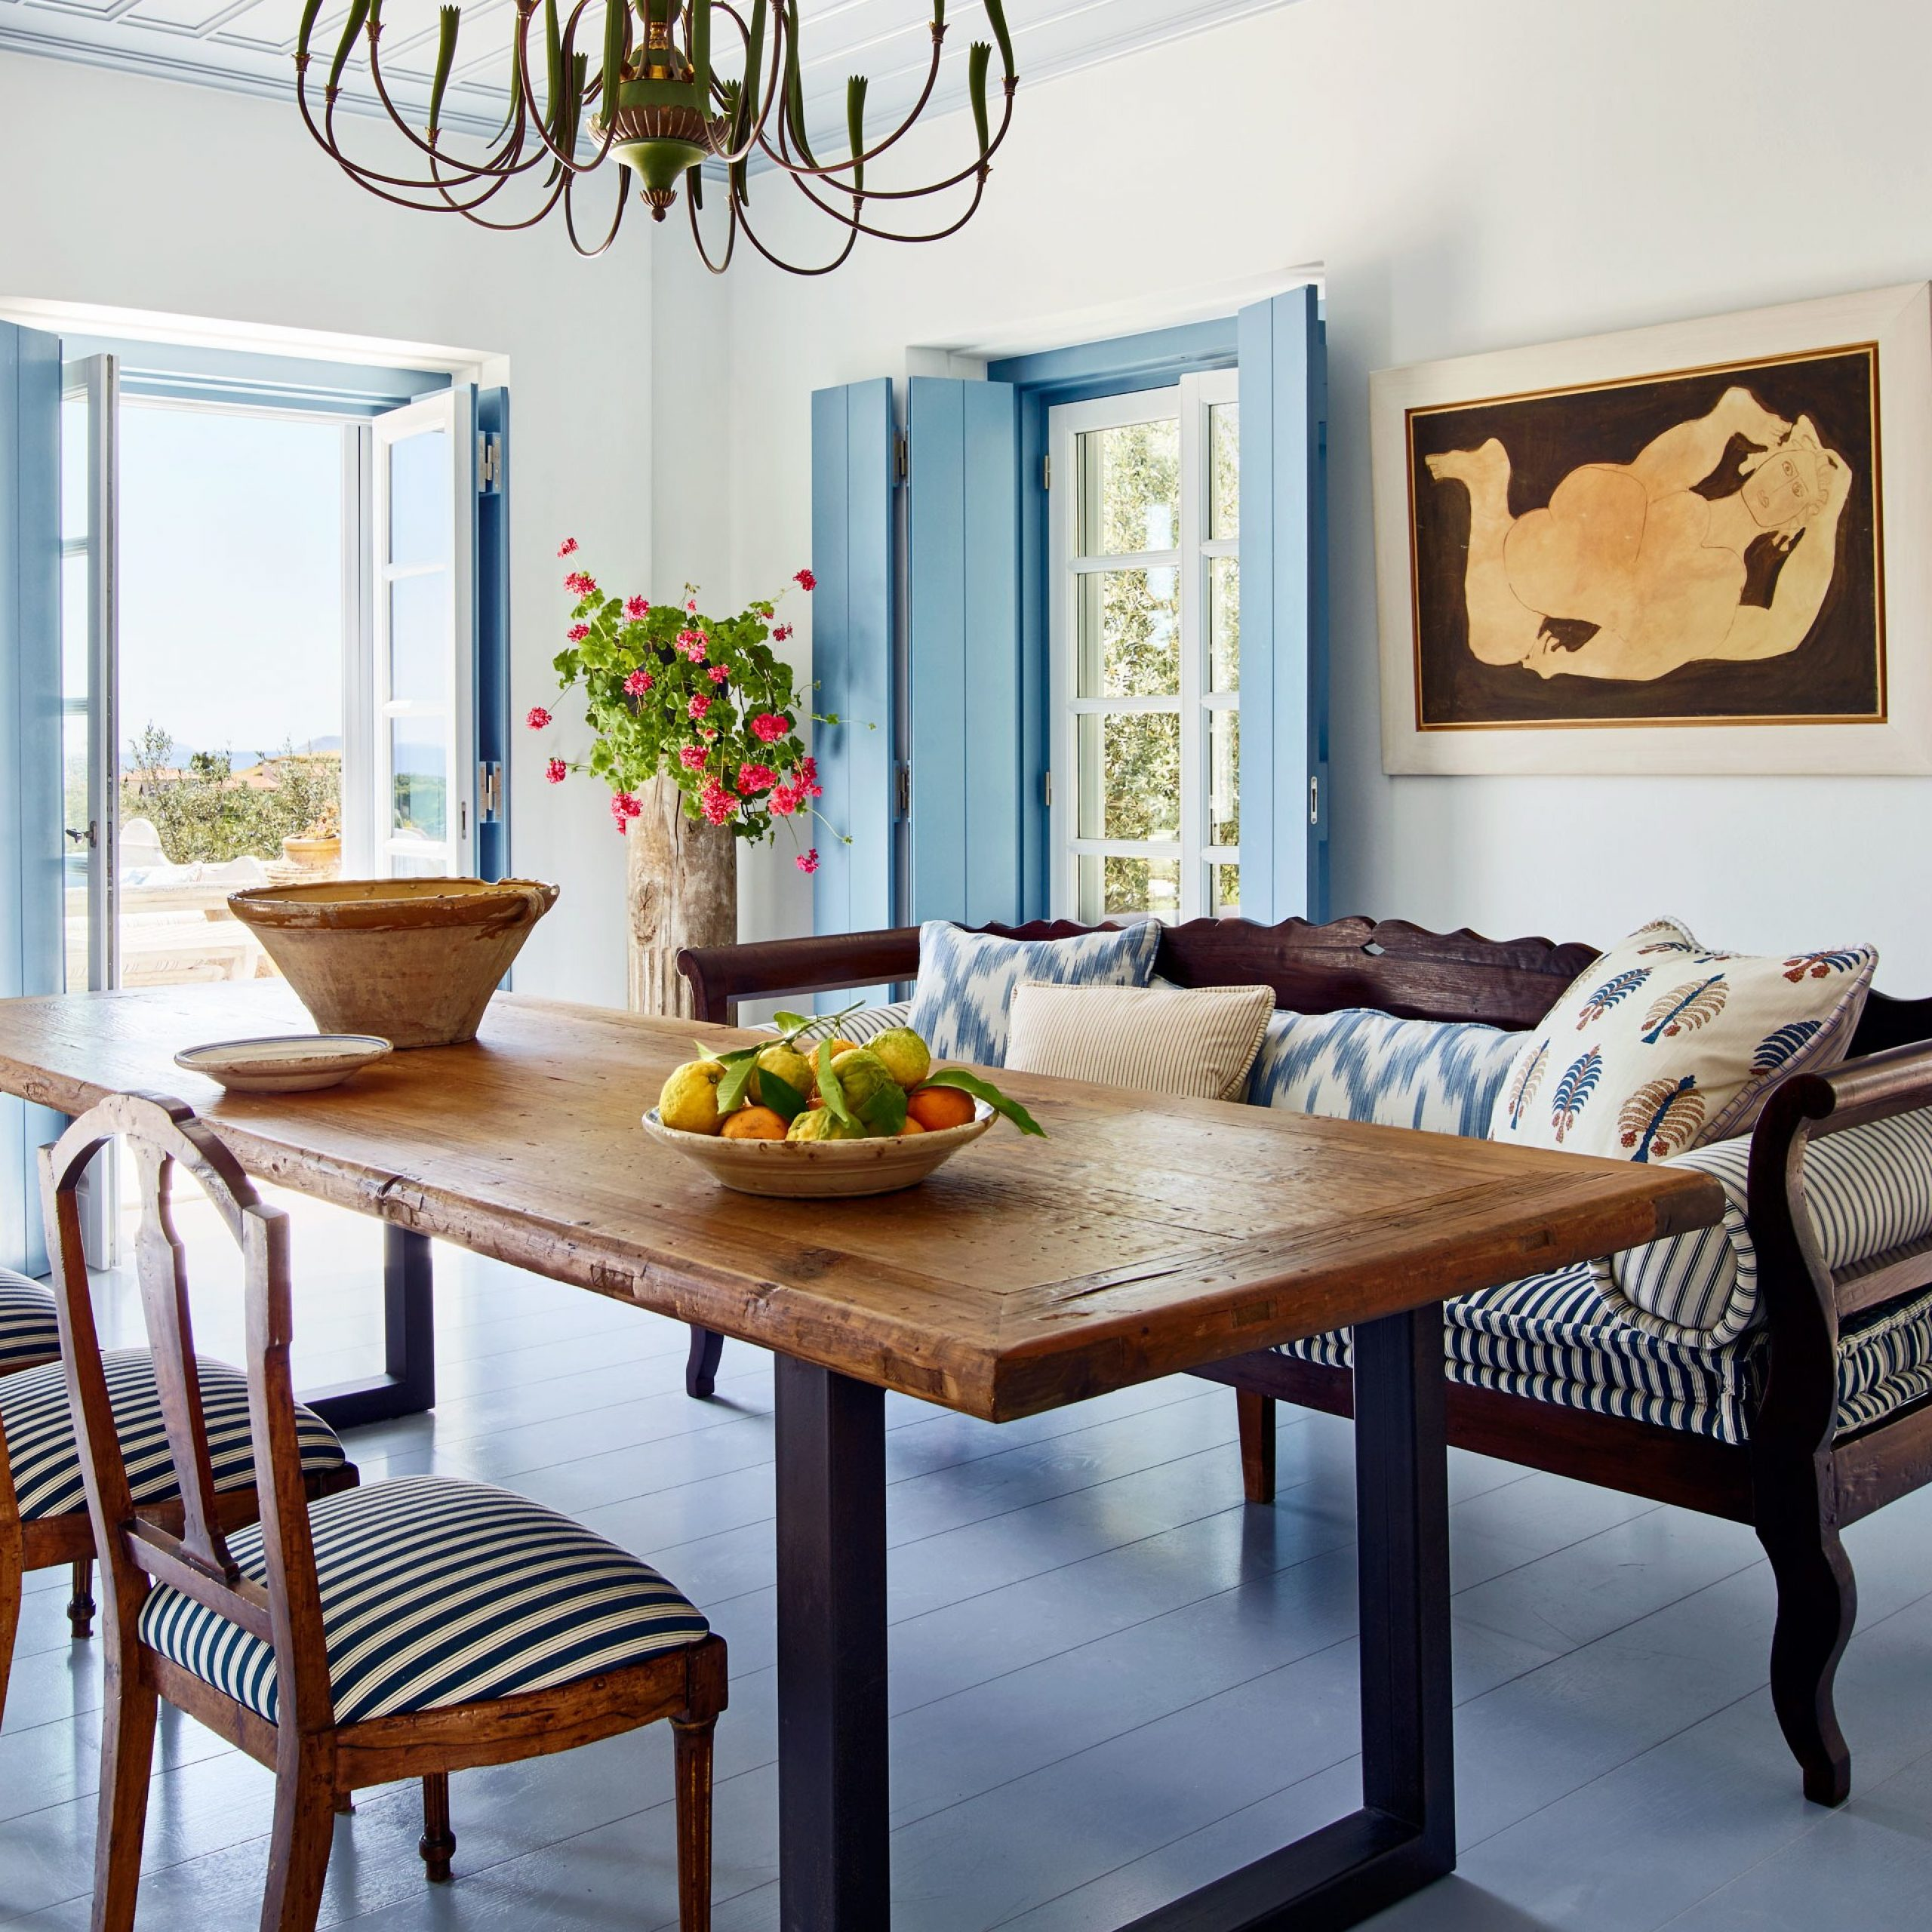 Recent Chrome Contemporary Square Casual Dining Tables For Tips To Mix And Match Dining Room Chairs Successfully (View 18 of 25)